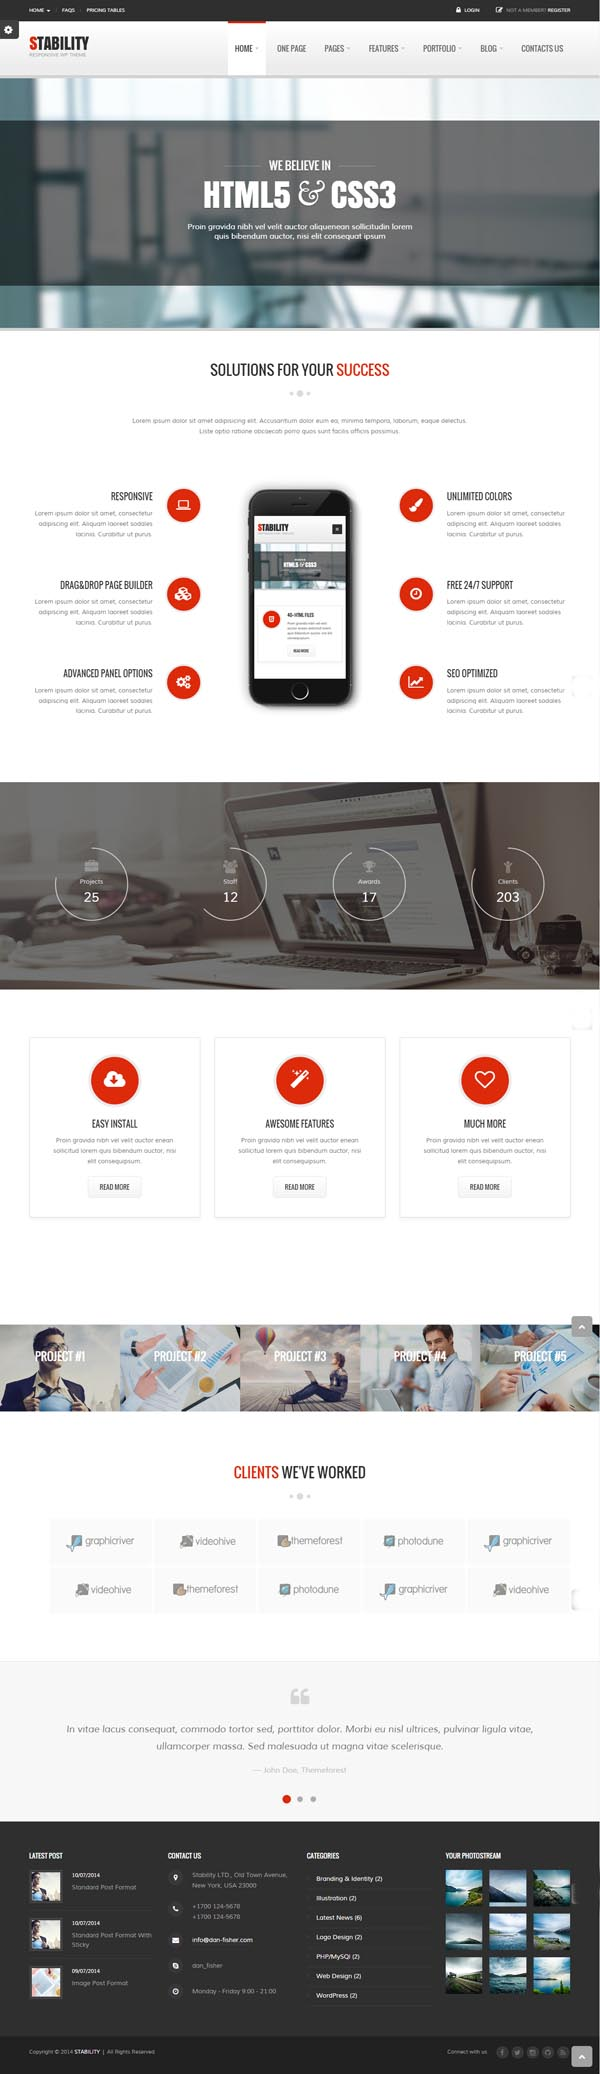 Stability - Responsive MultiPurpose WordPress Theme